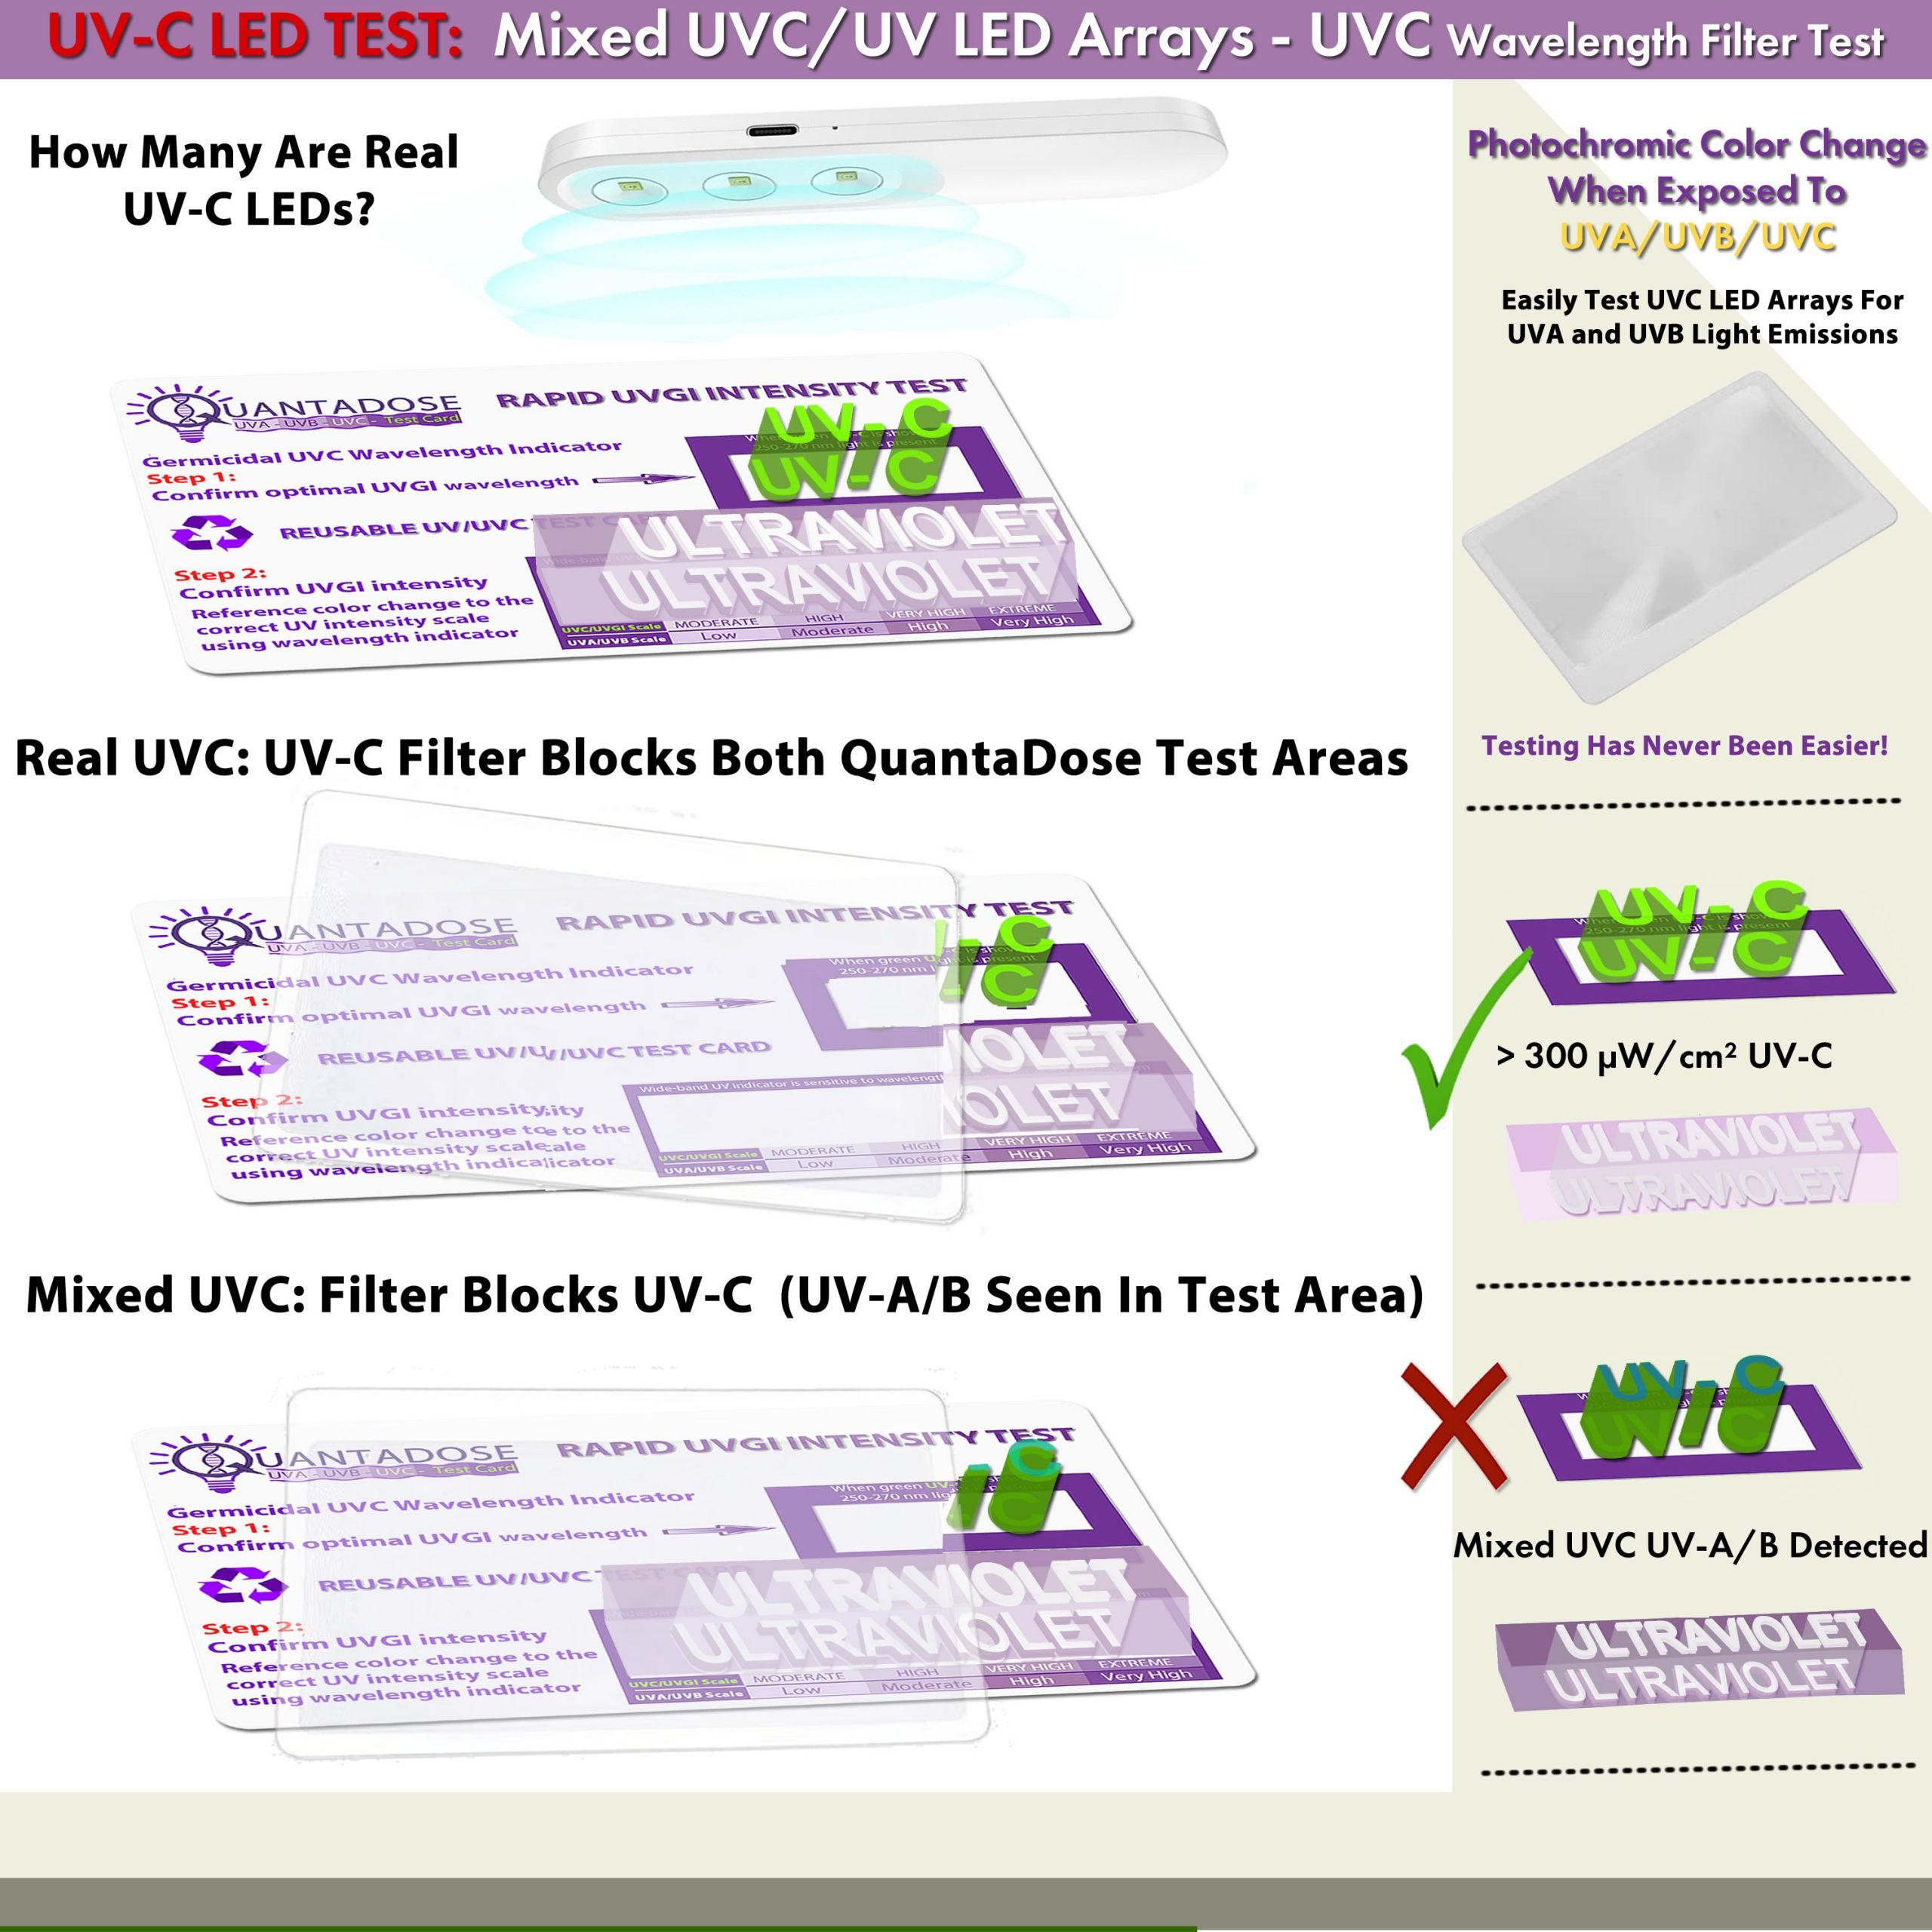 QUANTADOSE-UVC-LED-ARRAY-TEST-UVC-FLITER-